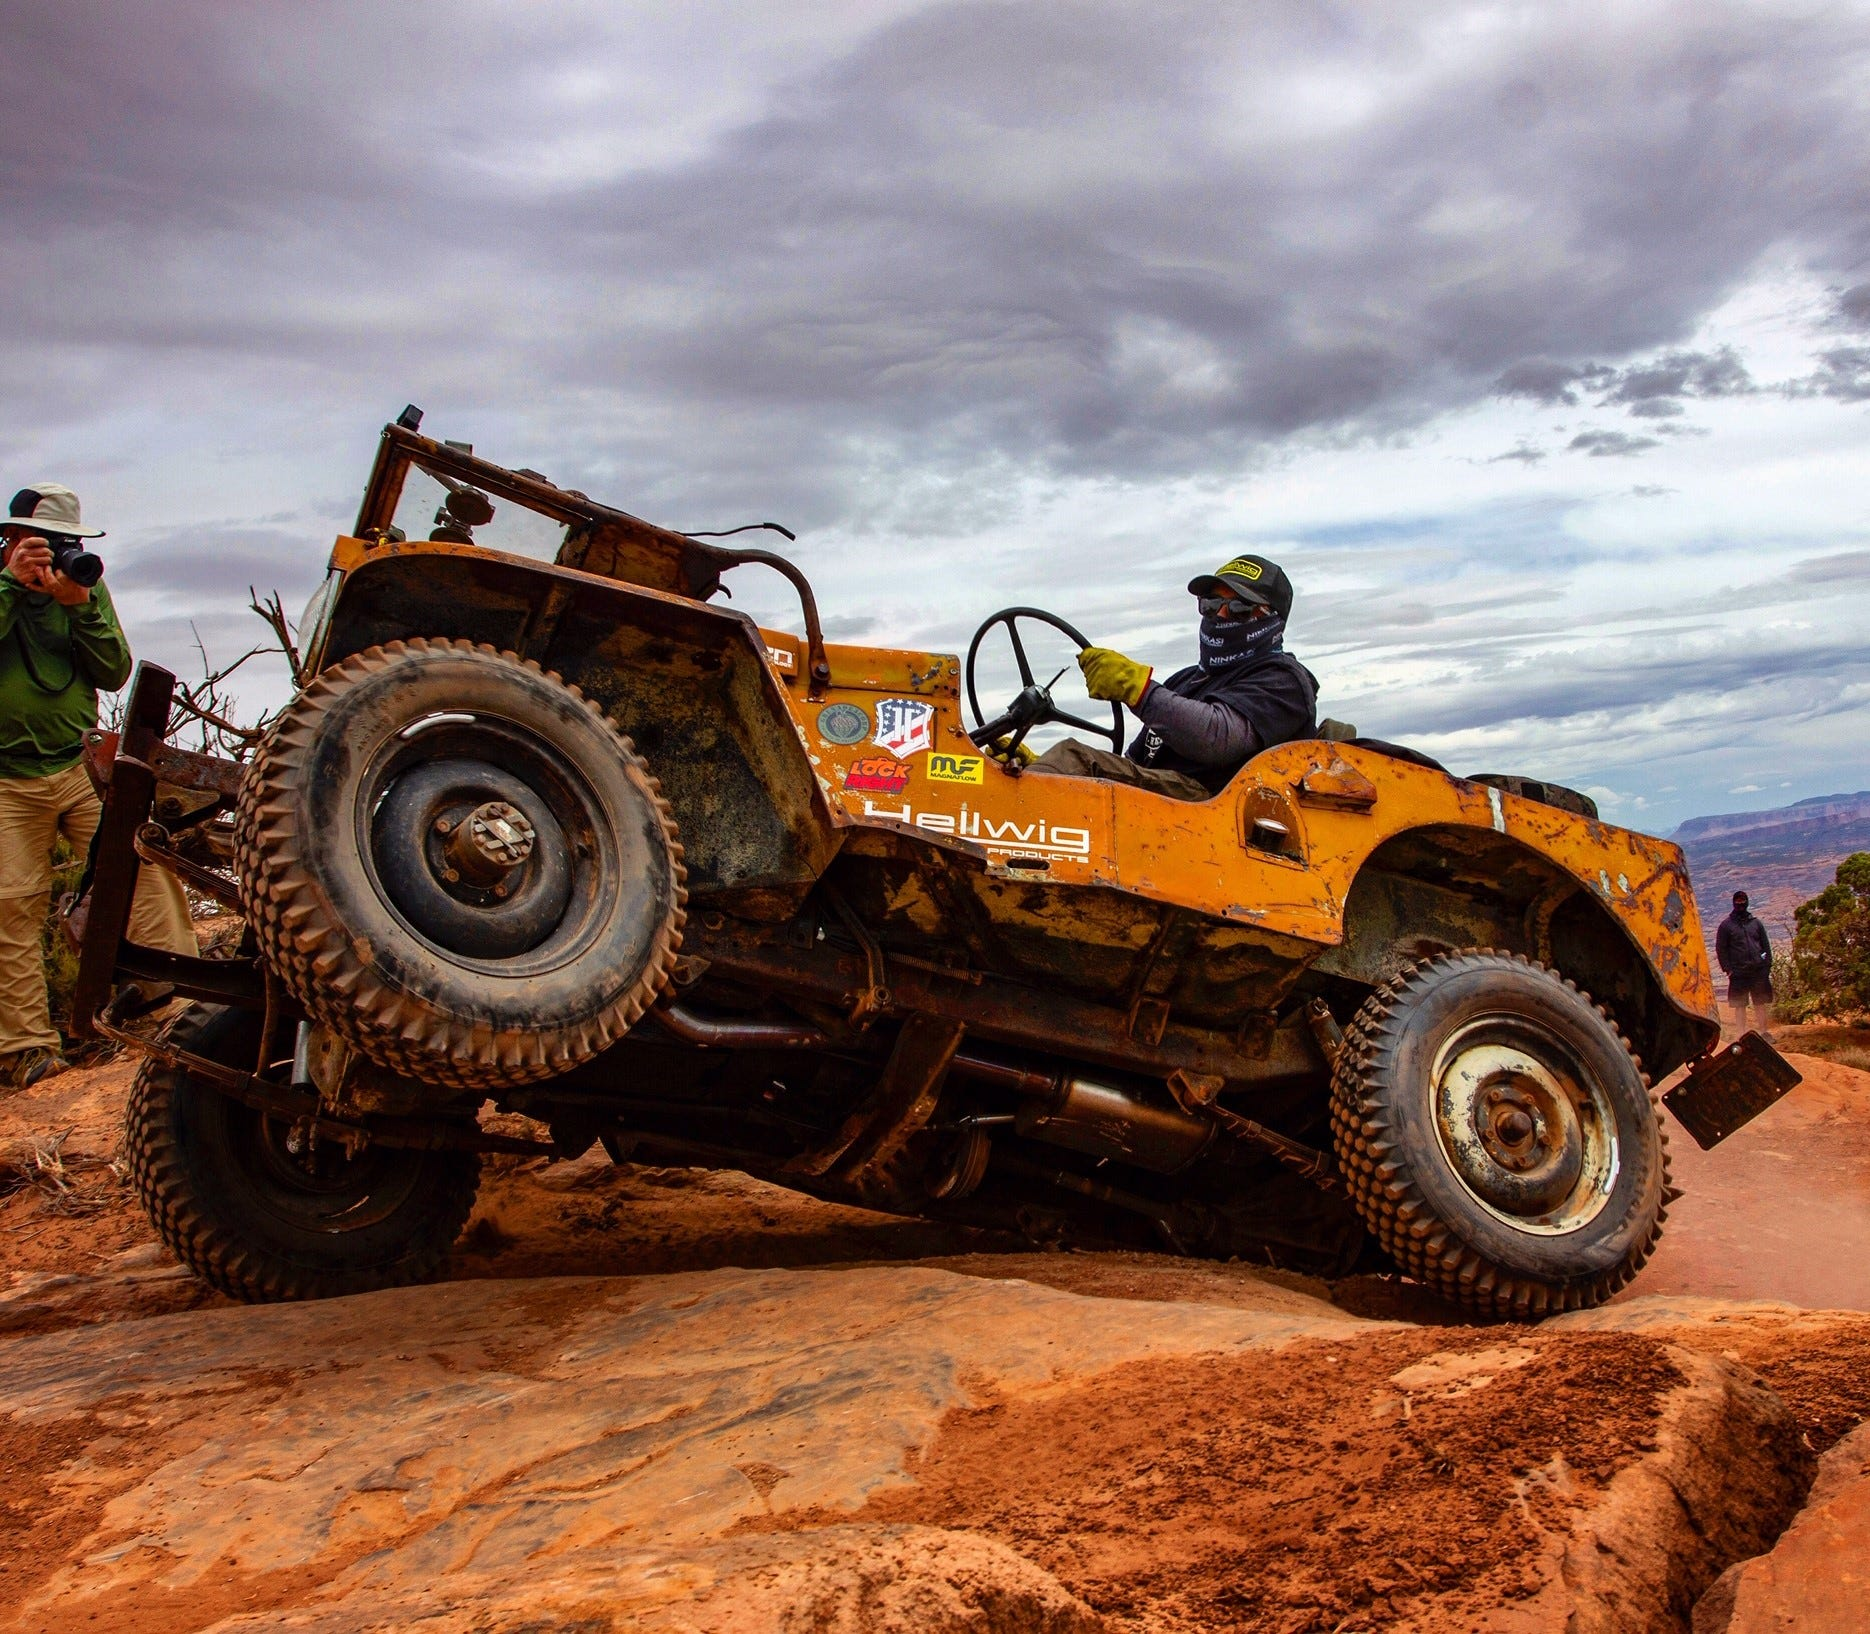 Firestone Knobby Tires on Mike Hallmark's Moab-Conquering 1948 Willys CJ2A